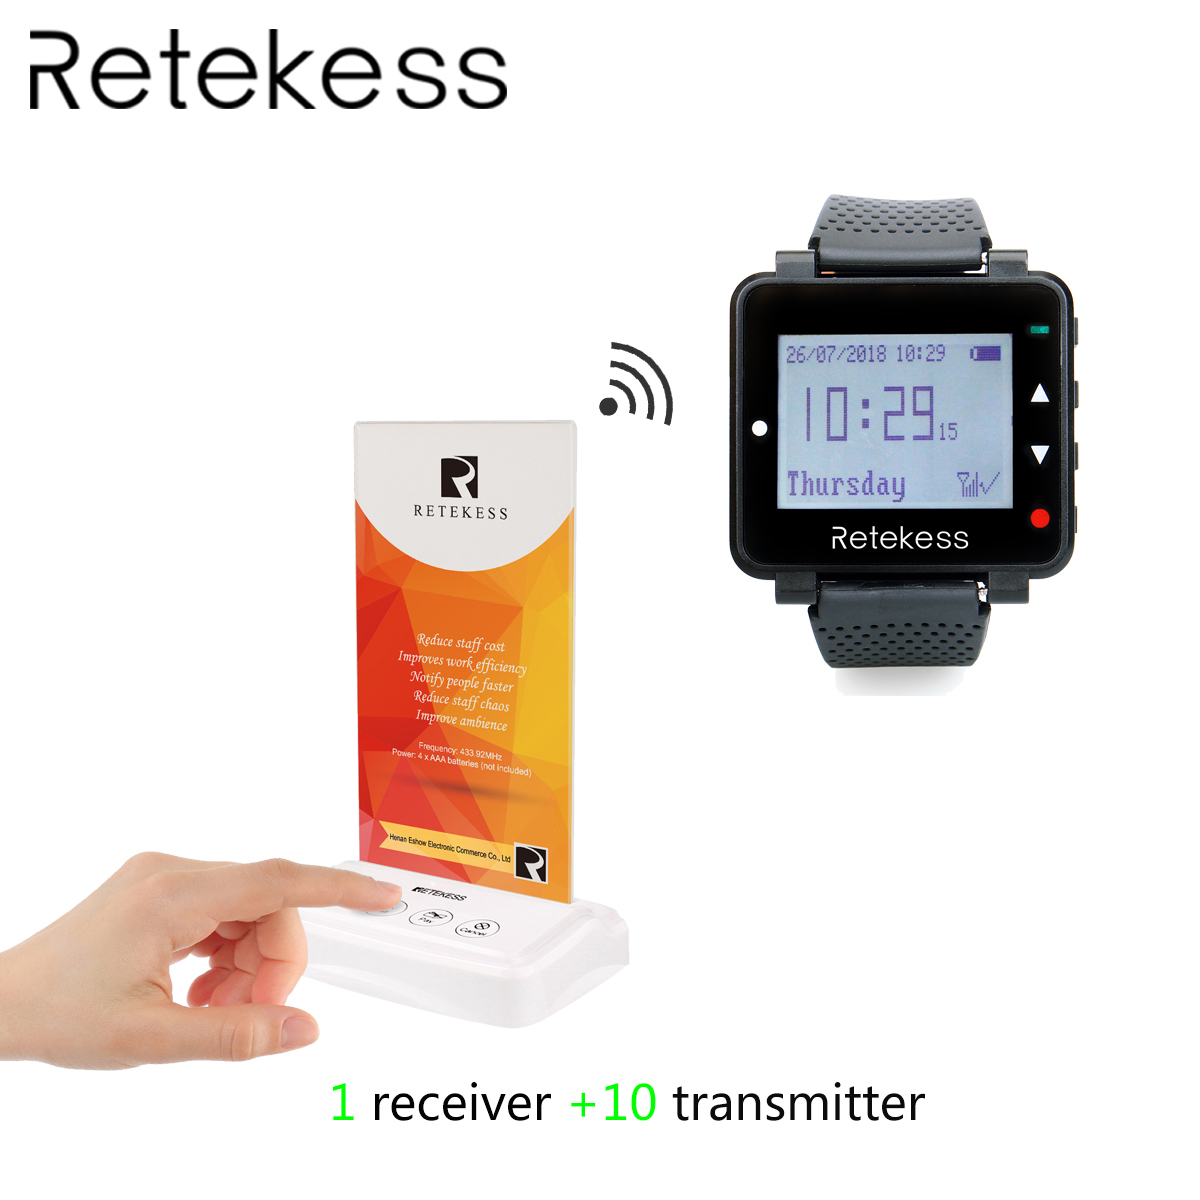 RETEKESS Pager System For Restaurant Wireless Calling Paging System Table Card Pagers 1 Watch Receiver + 10 Transmitter ButtonRETEKESS Pager System For Restaurant Wireless Calling Paging System Table Card Pagers 1 Watch Receiver + 10 Transmitter Button